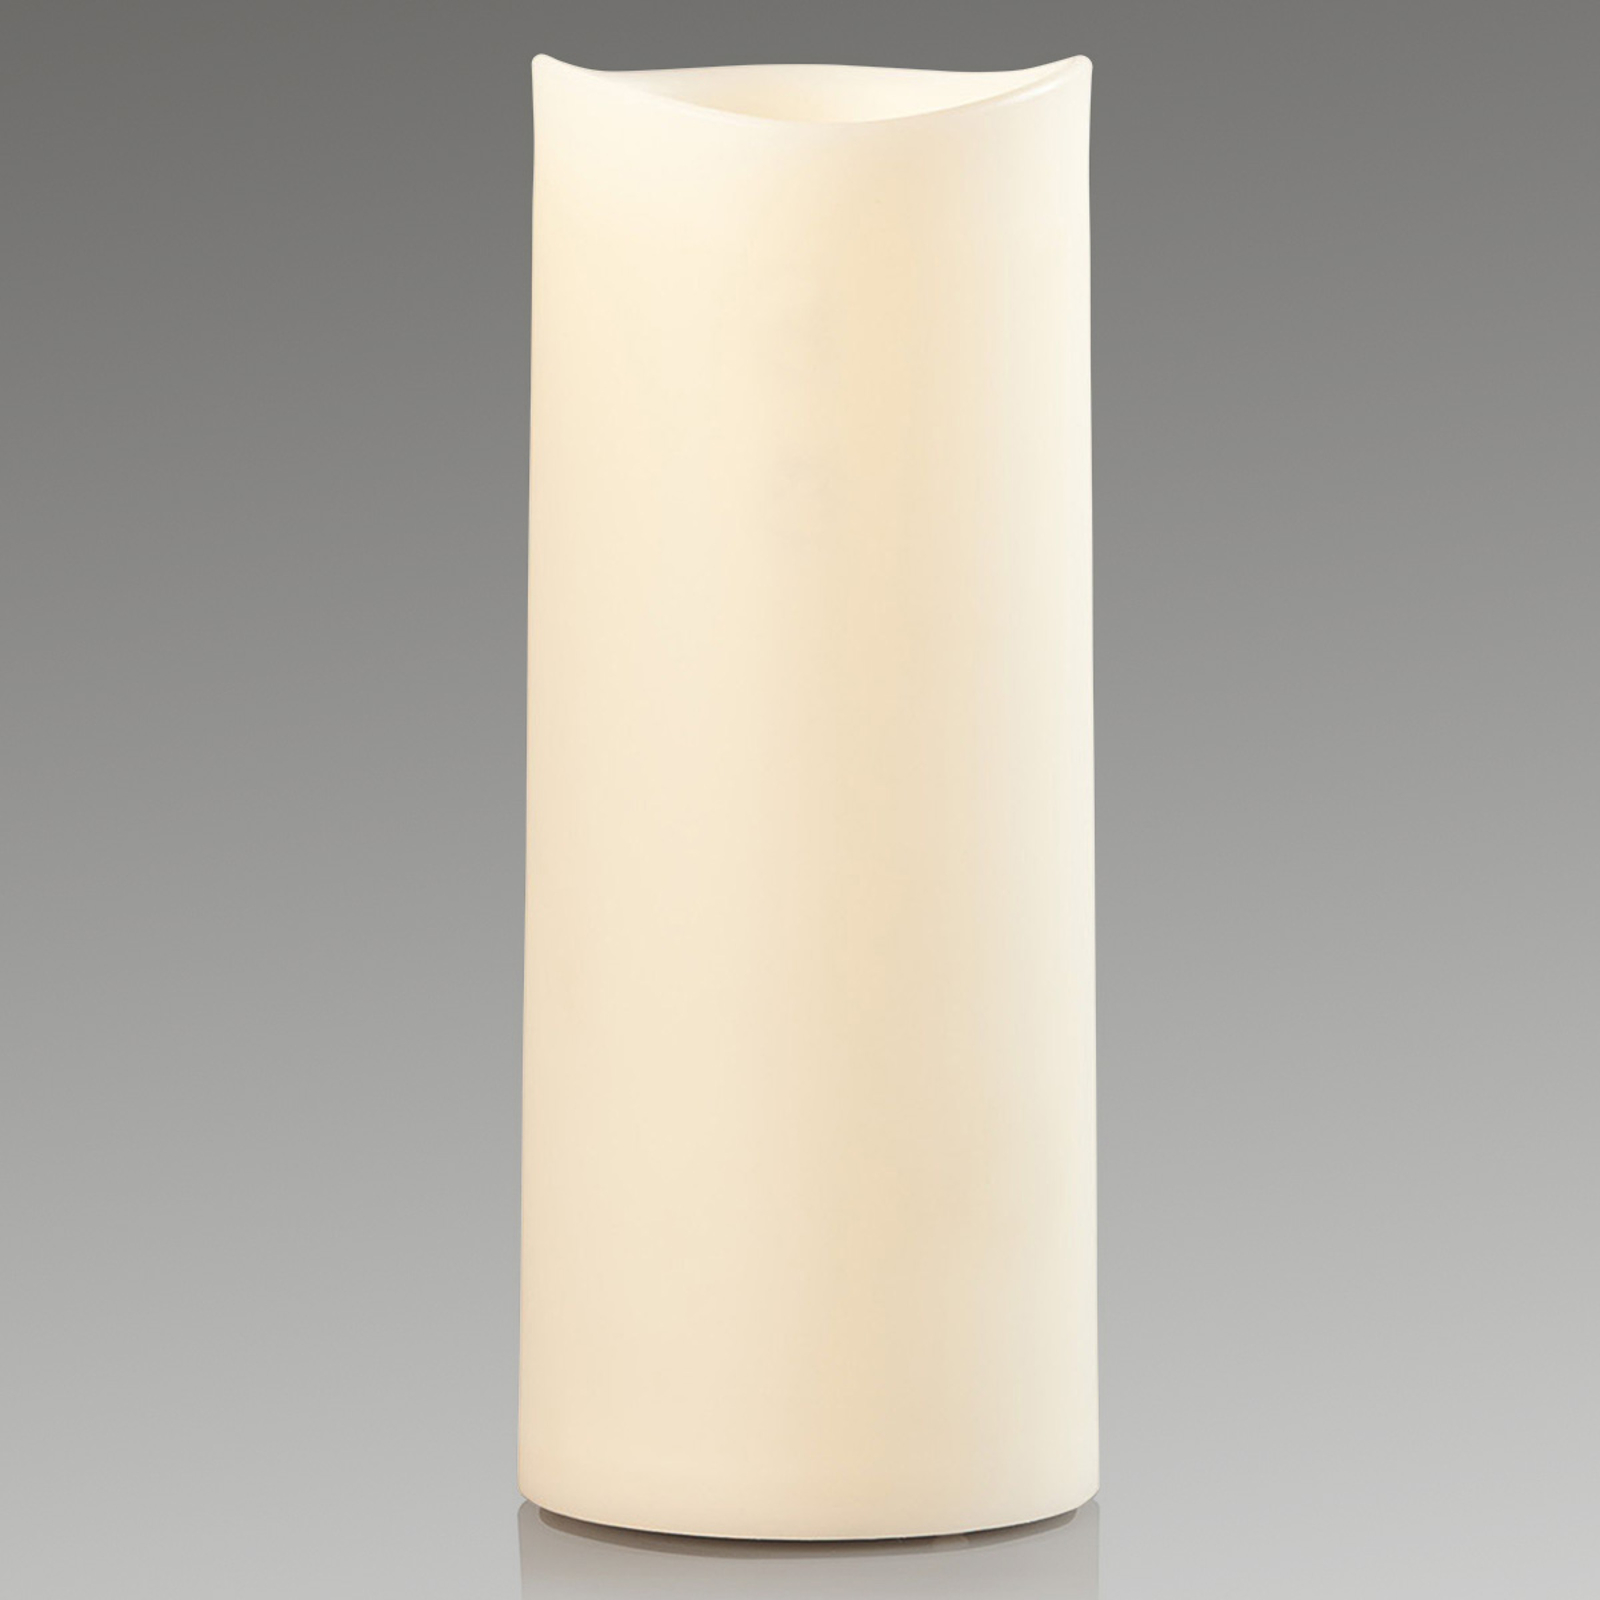 Lampe LED Outdoor Candle, 22 cm